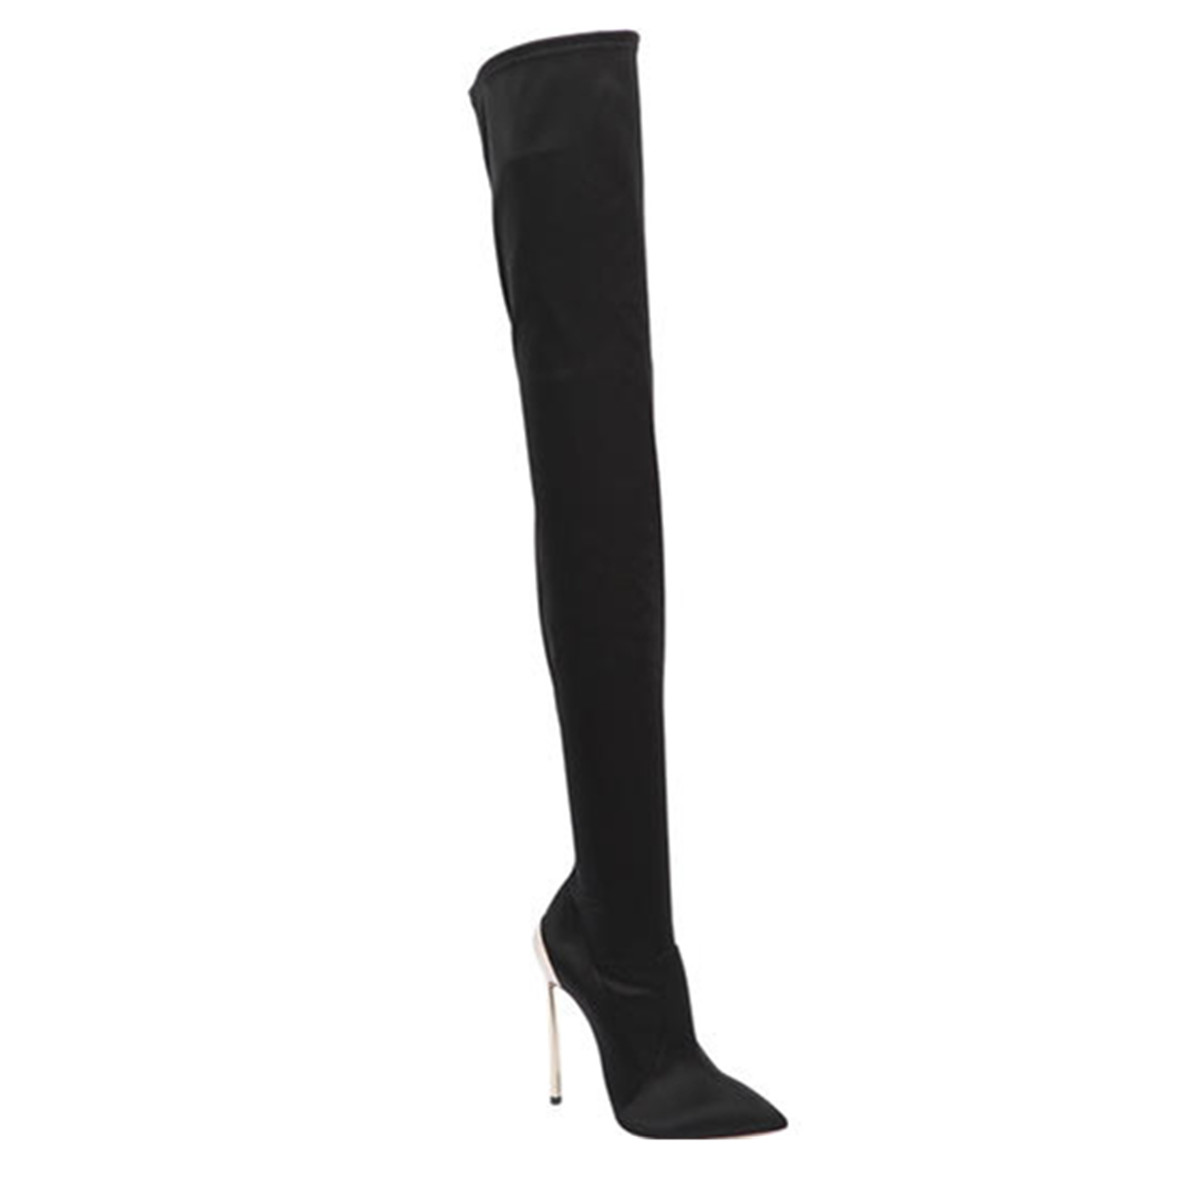 MStacchi Design Sexy Women Fashion Pointed Toe Elastic Metal Stiletto Heel Over Knee Boots Thigh Long High Heel Boots Party Shoe